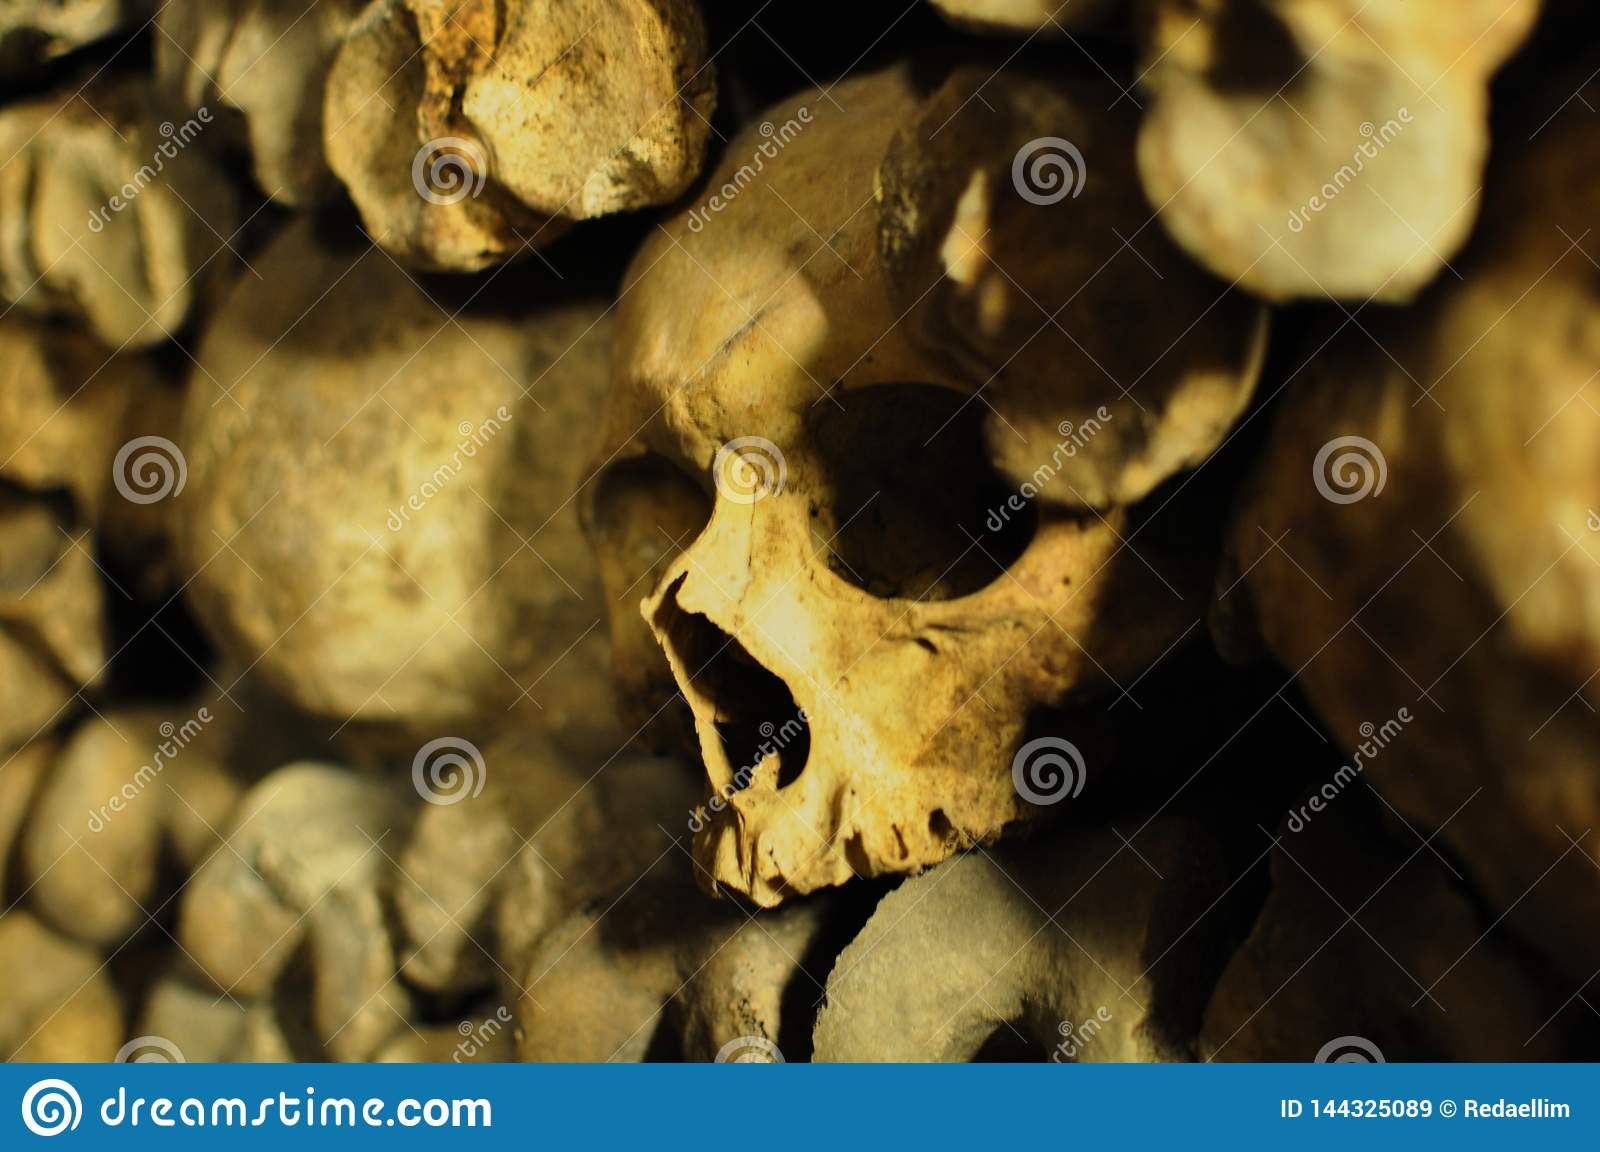 Human skulls in the catacombs of Paris, France